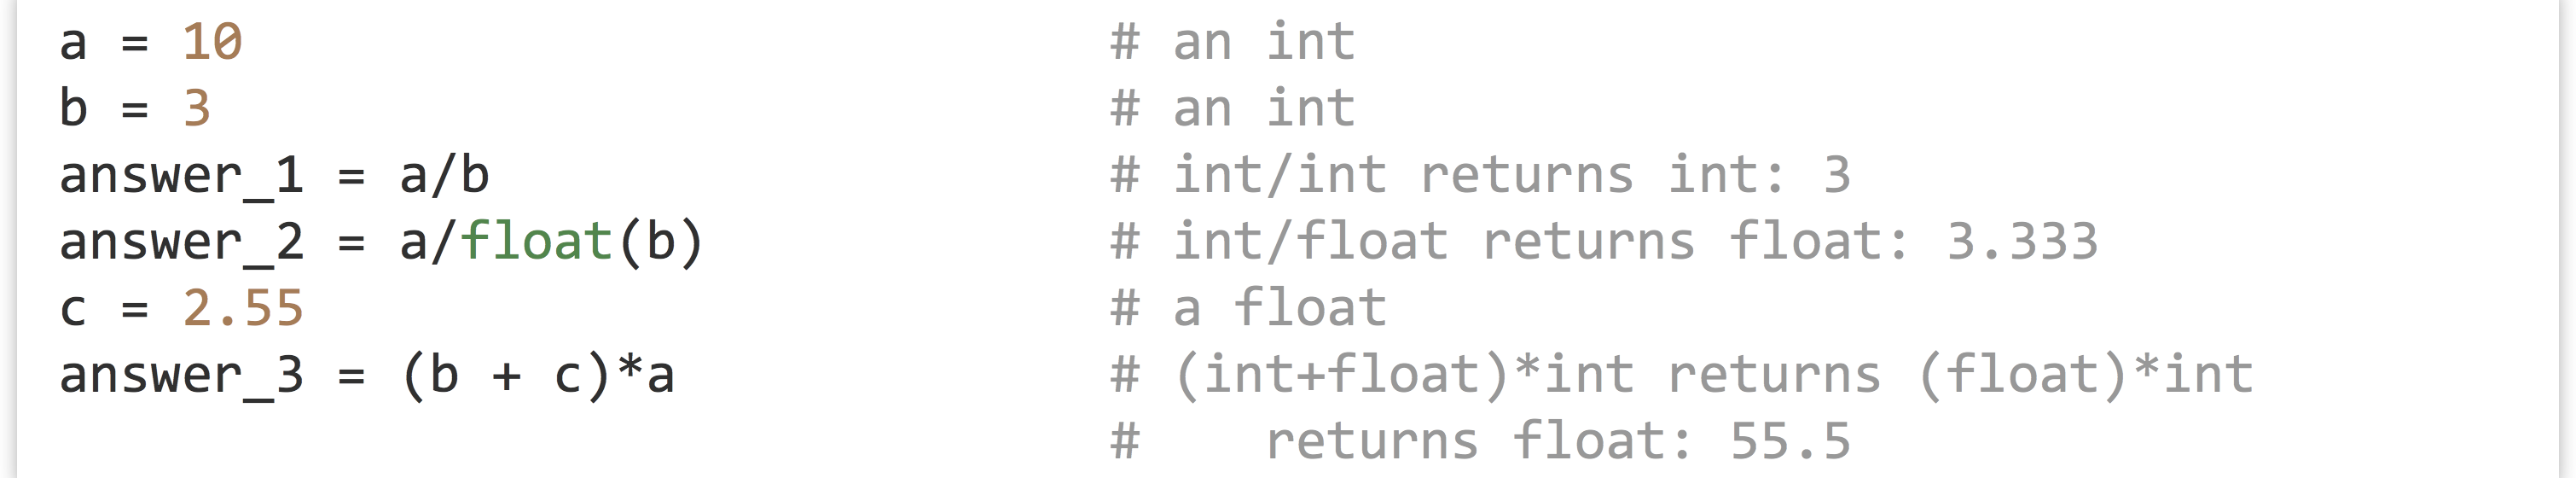 II.2_4_py_8_float_int_math